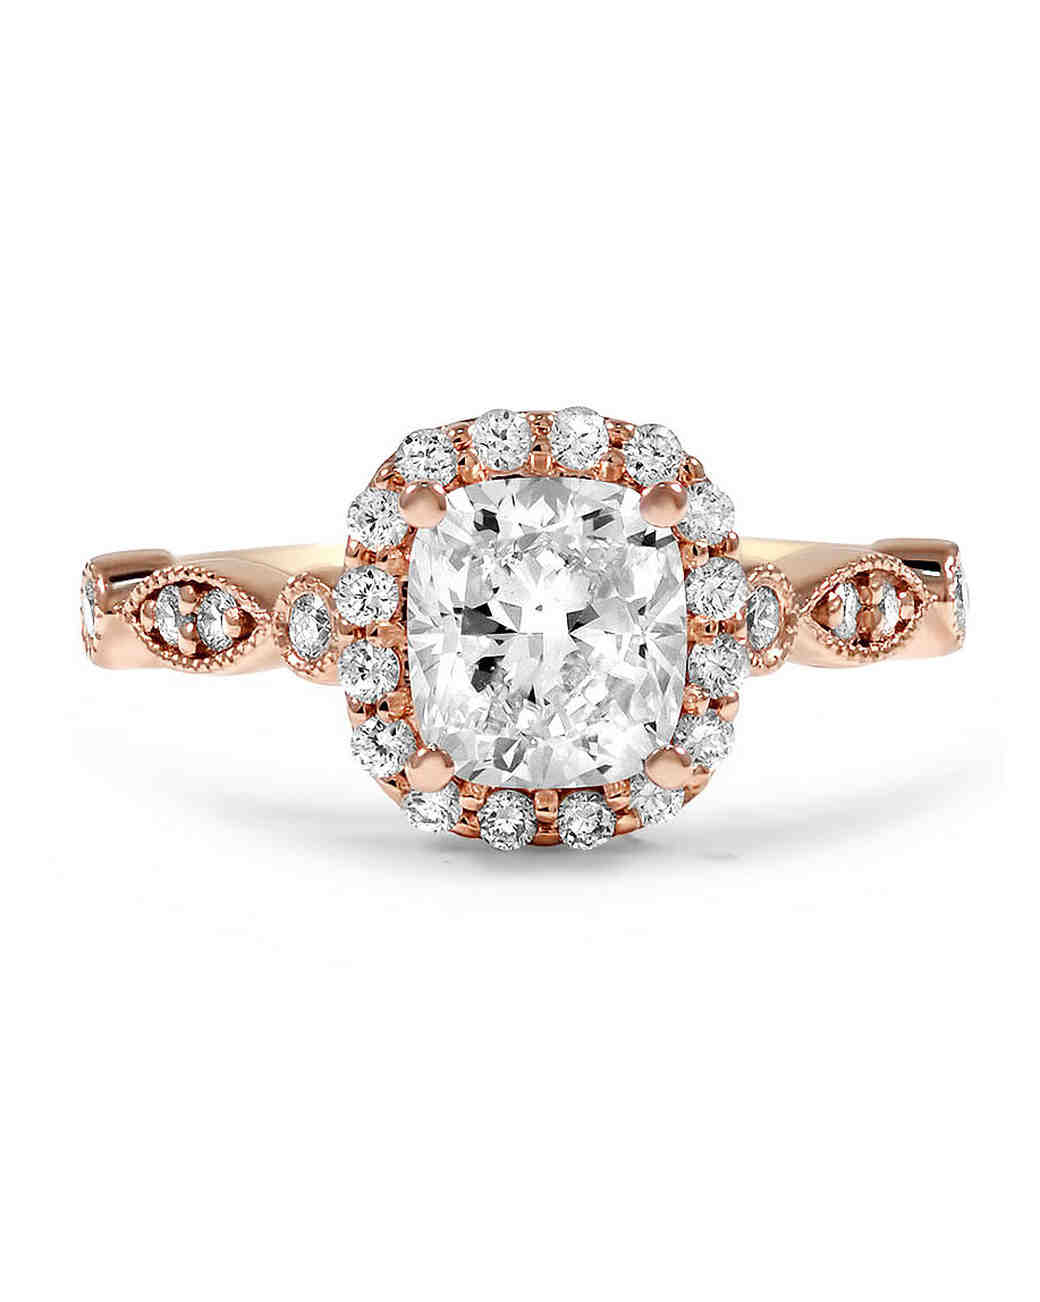 Brilliant Earth Cushion-Cut Diamond Engagement Ring on Rose Gold Band